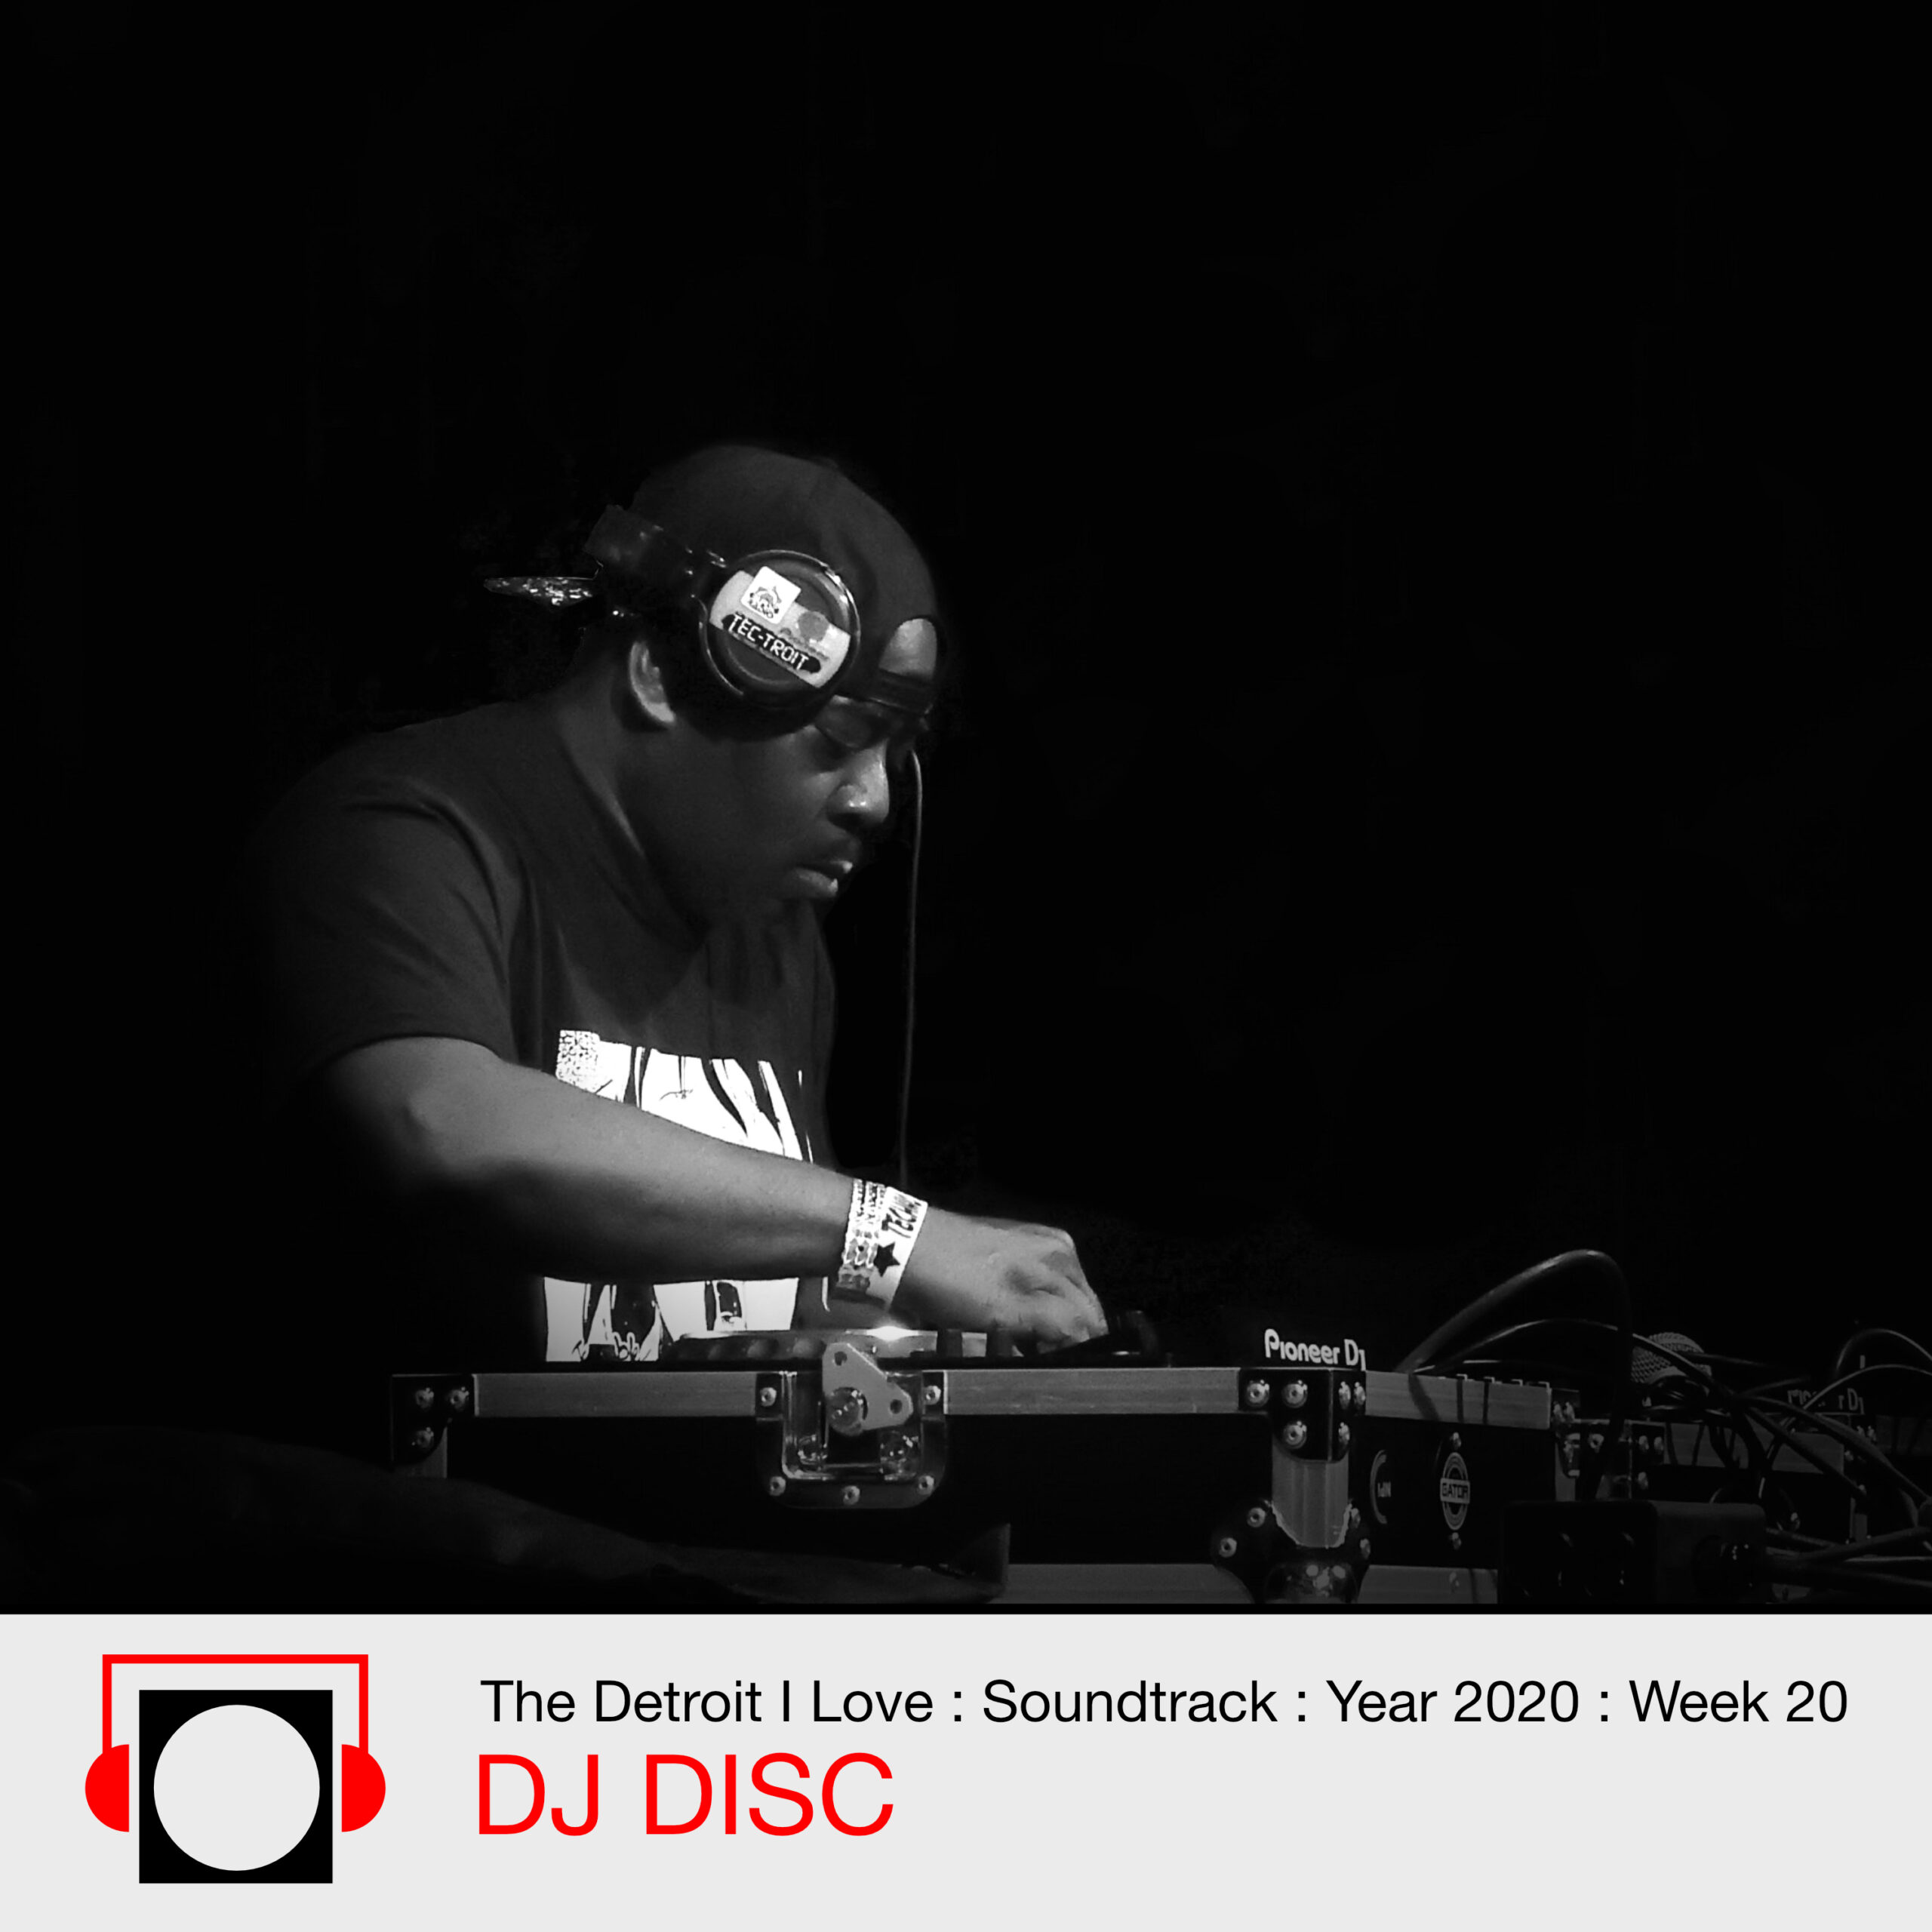 Soundtrack : DJ DISC